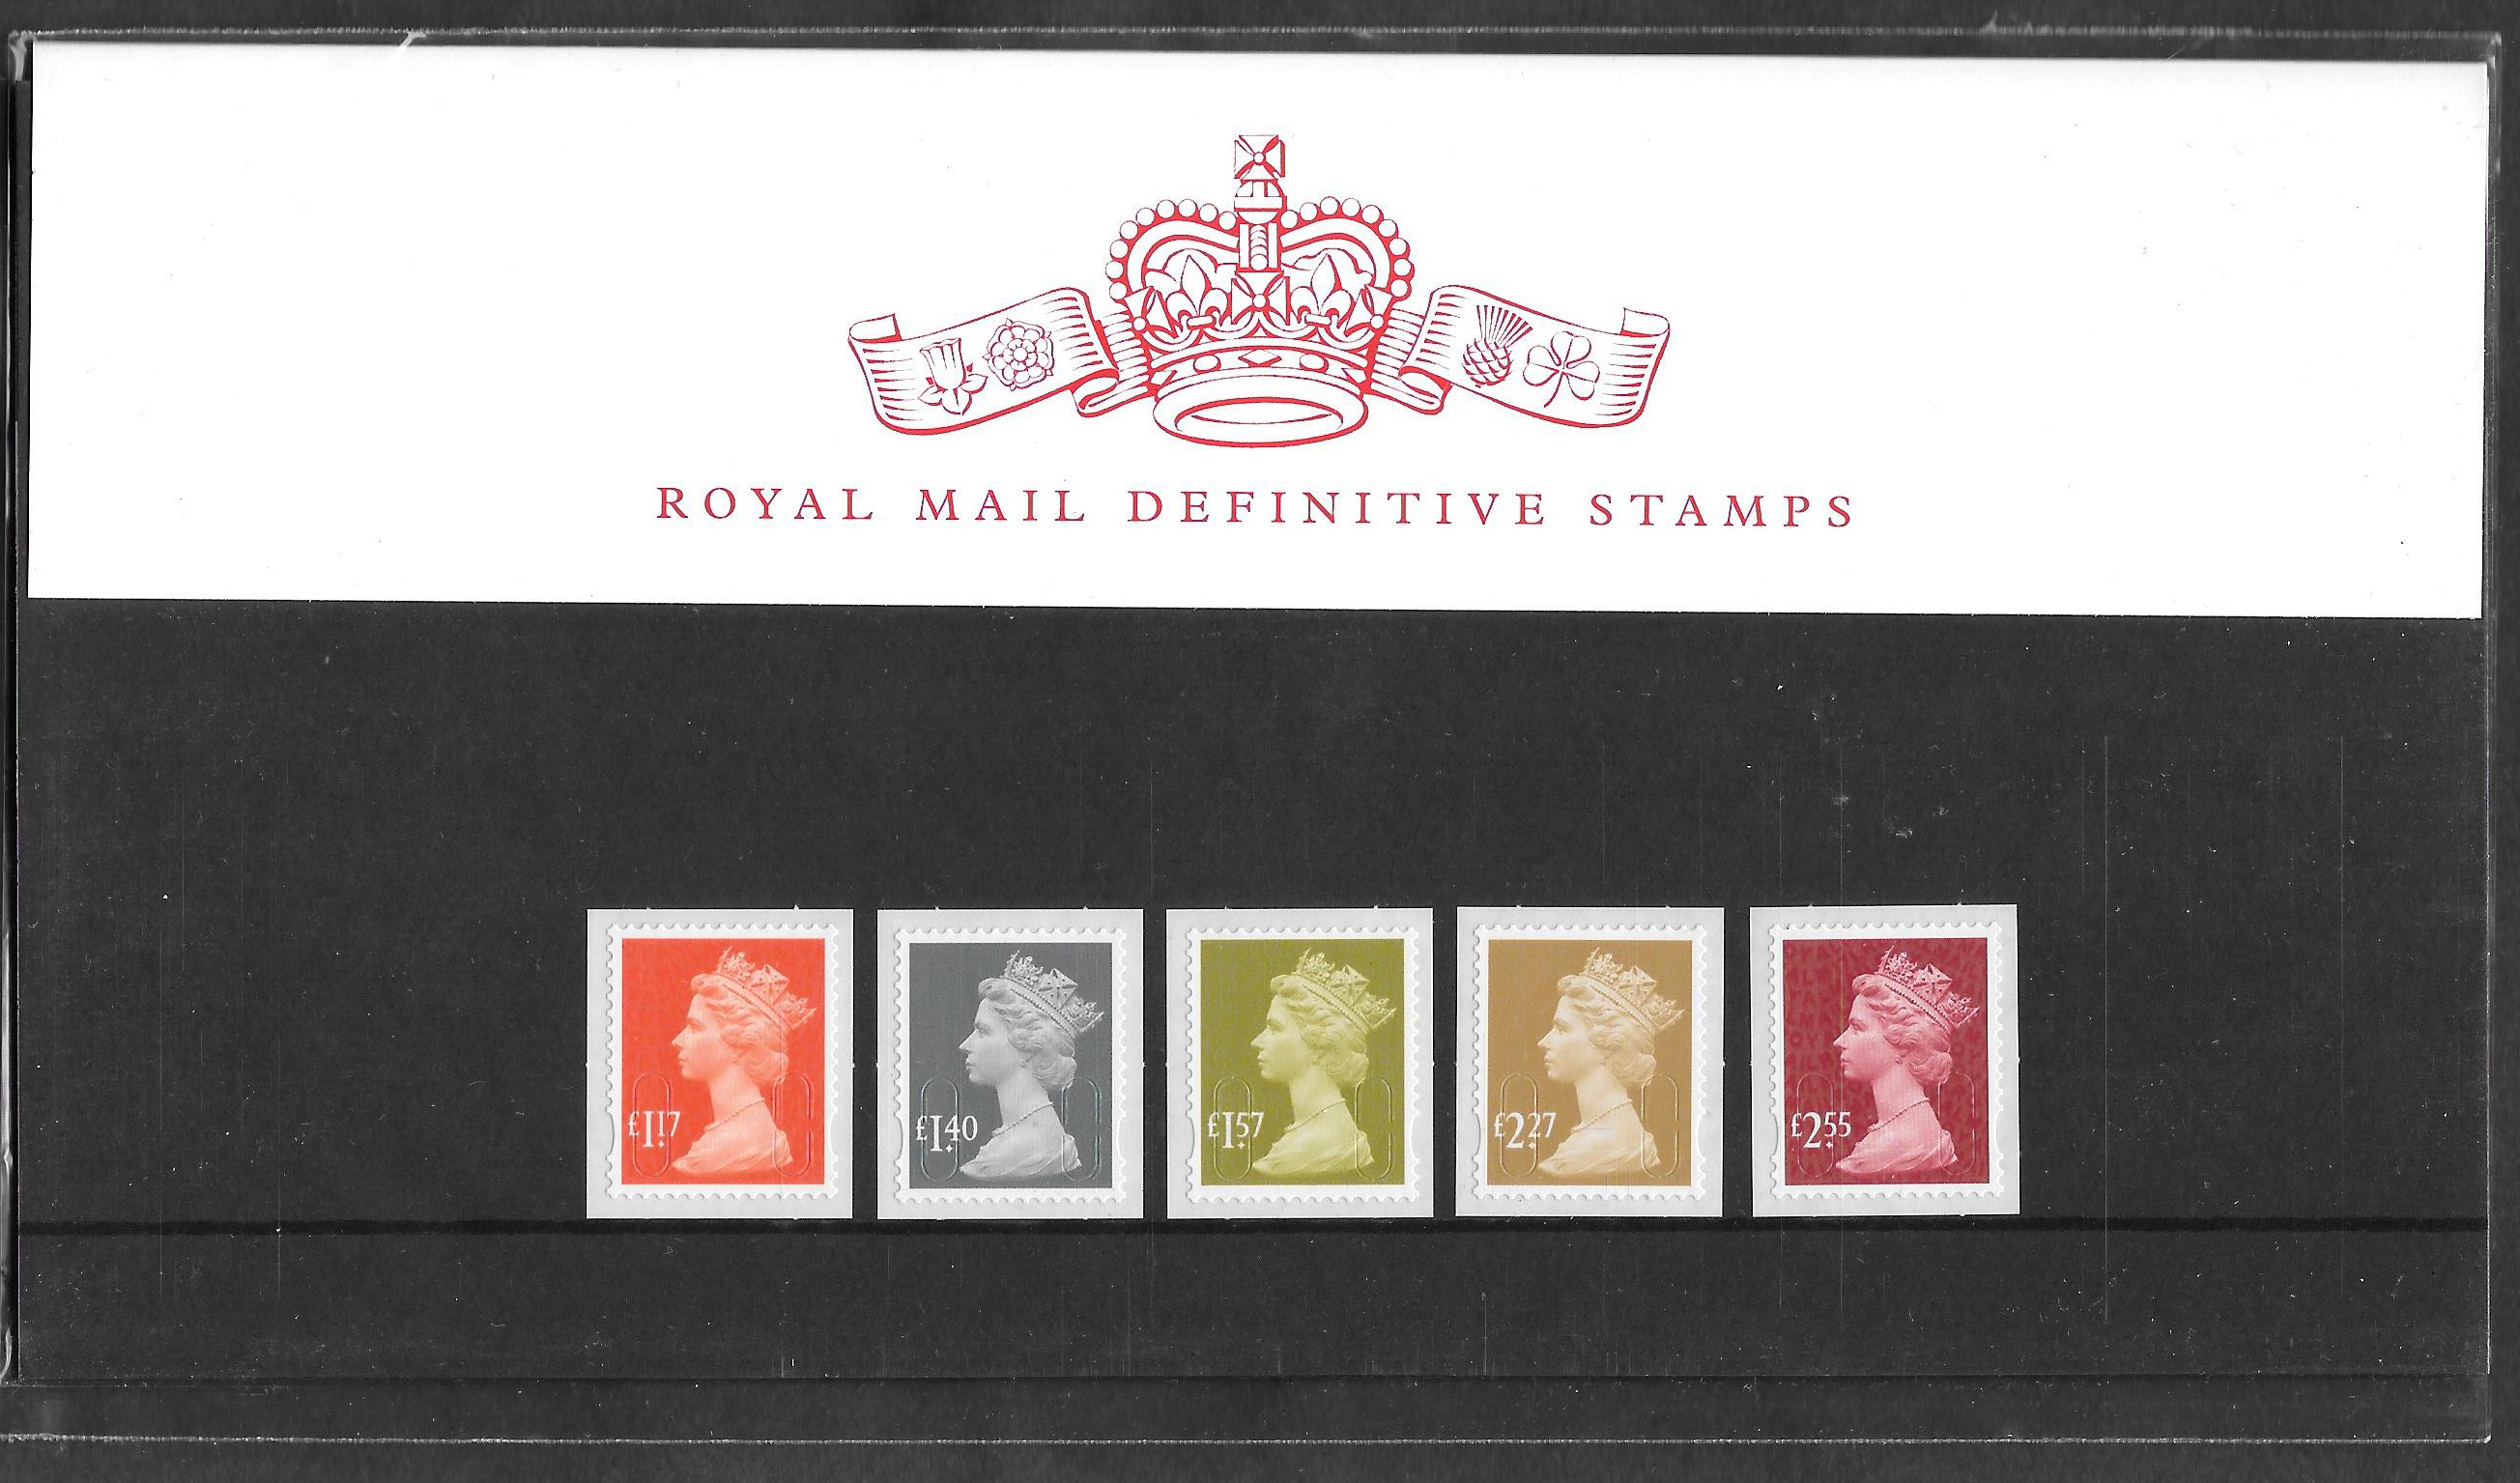 2017 Machin Definitive Royal Mail Presentation Pack 106